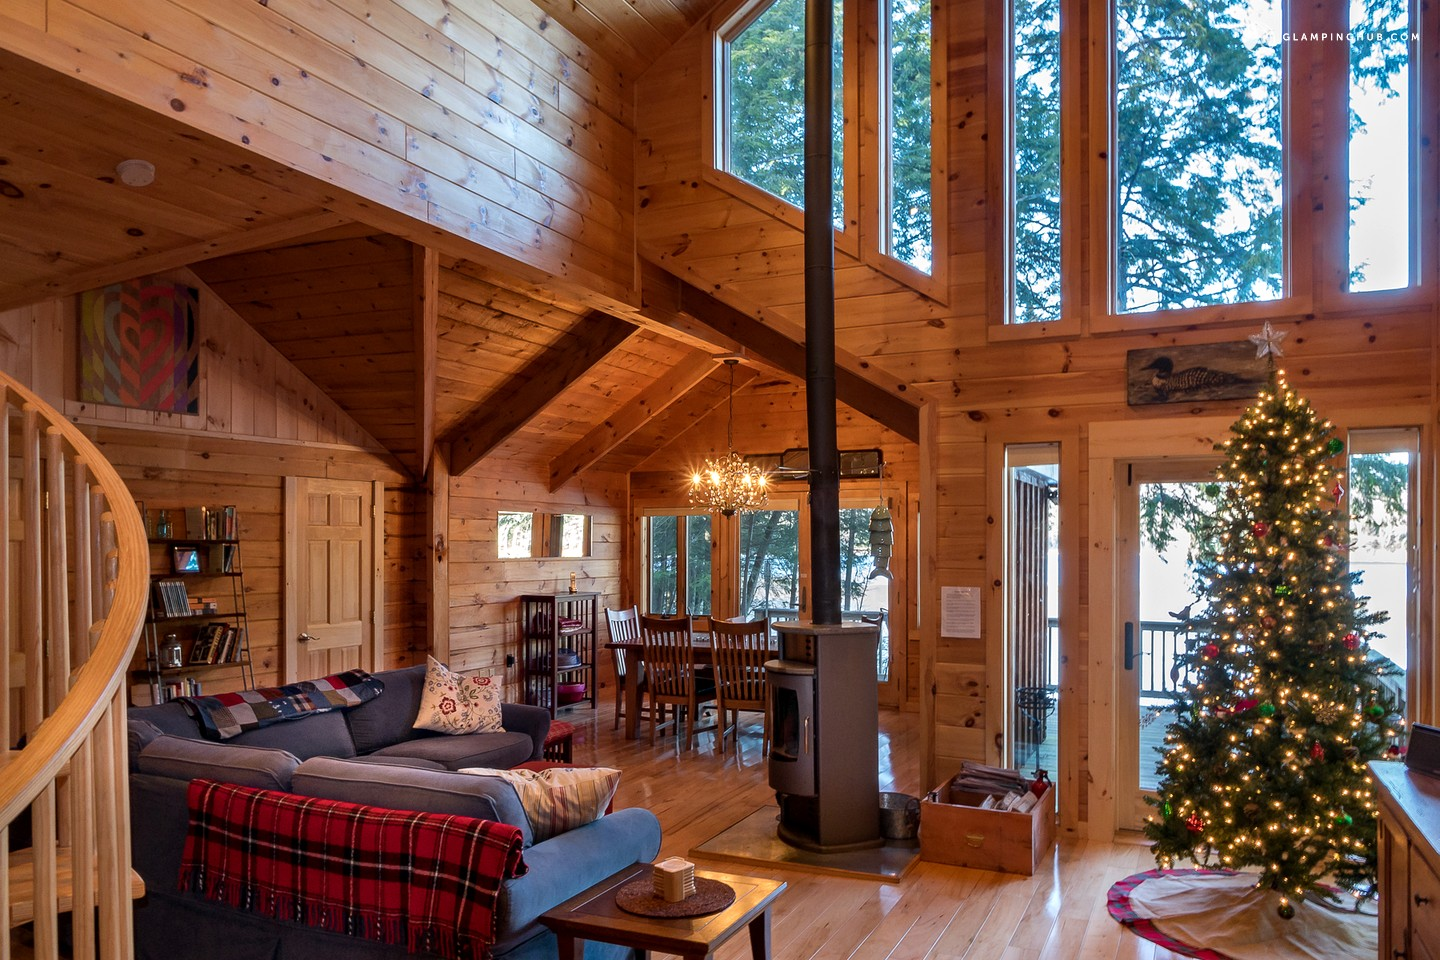 cabin property woodstock ny image tub deal and beach fireplace bed w heart luxury the of conservation from s secluded cabins yards area hot in rentals home ha